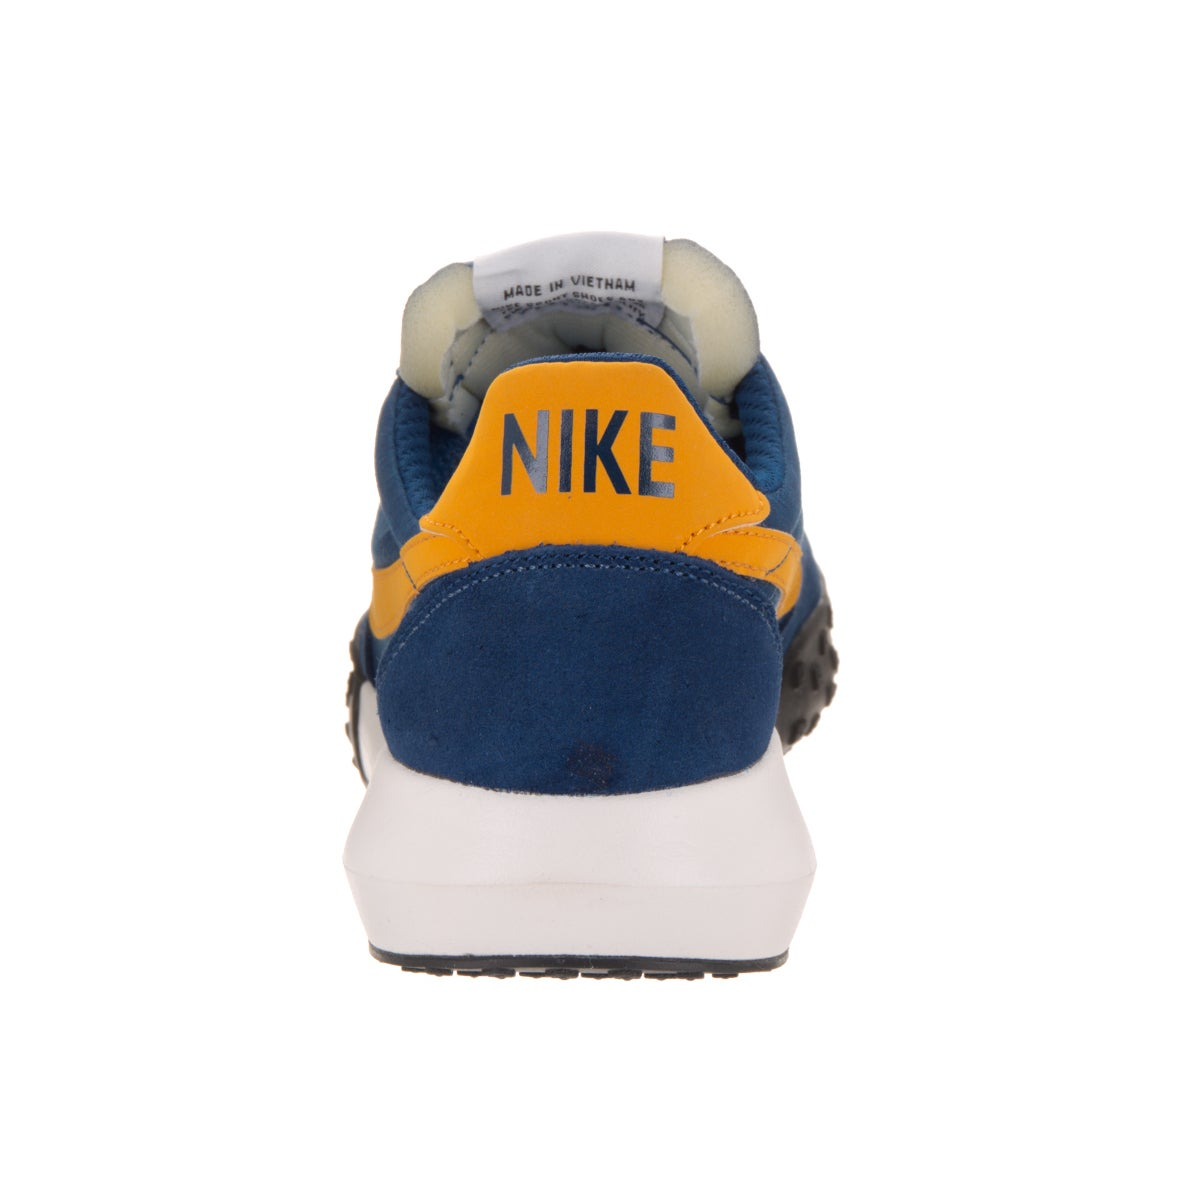 446893ca1bd88 Shop Nike Men s Roshe Waffle Racer NM Coast Blue and Gold Leaf Suede  Training Shoes - Free Shipping Today - Overstock - 13768177